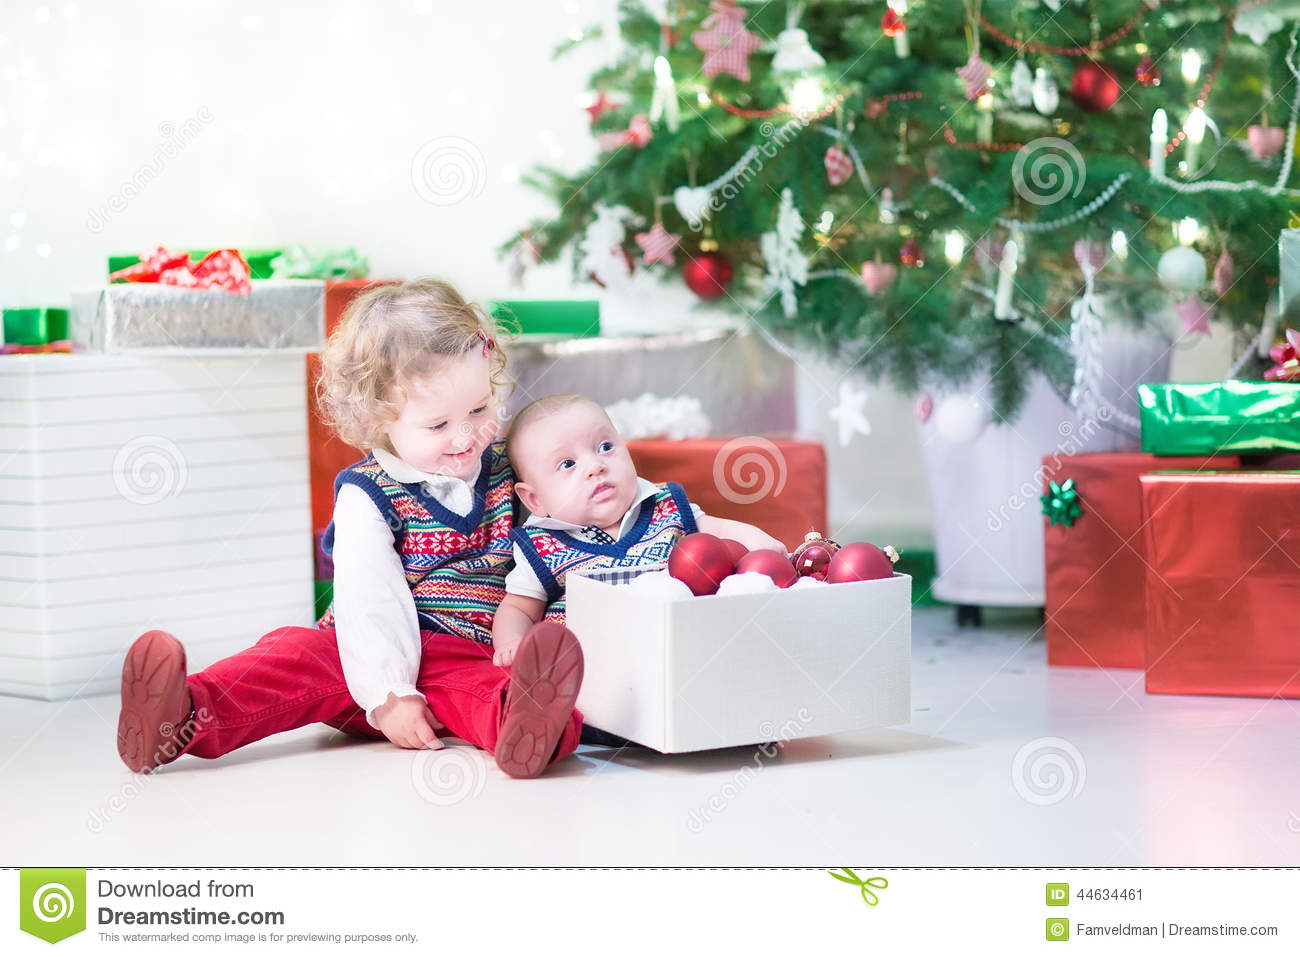 Little toddler girl and her newborn brother decorating Christmas tree